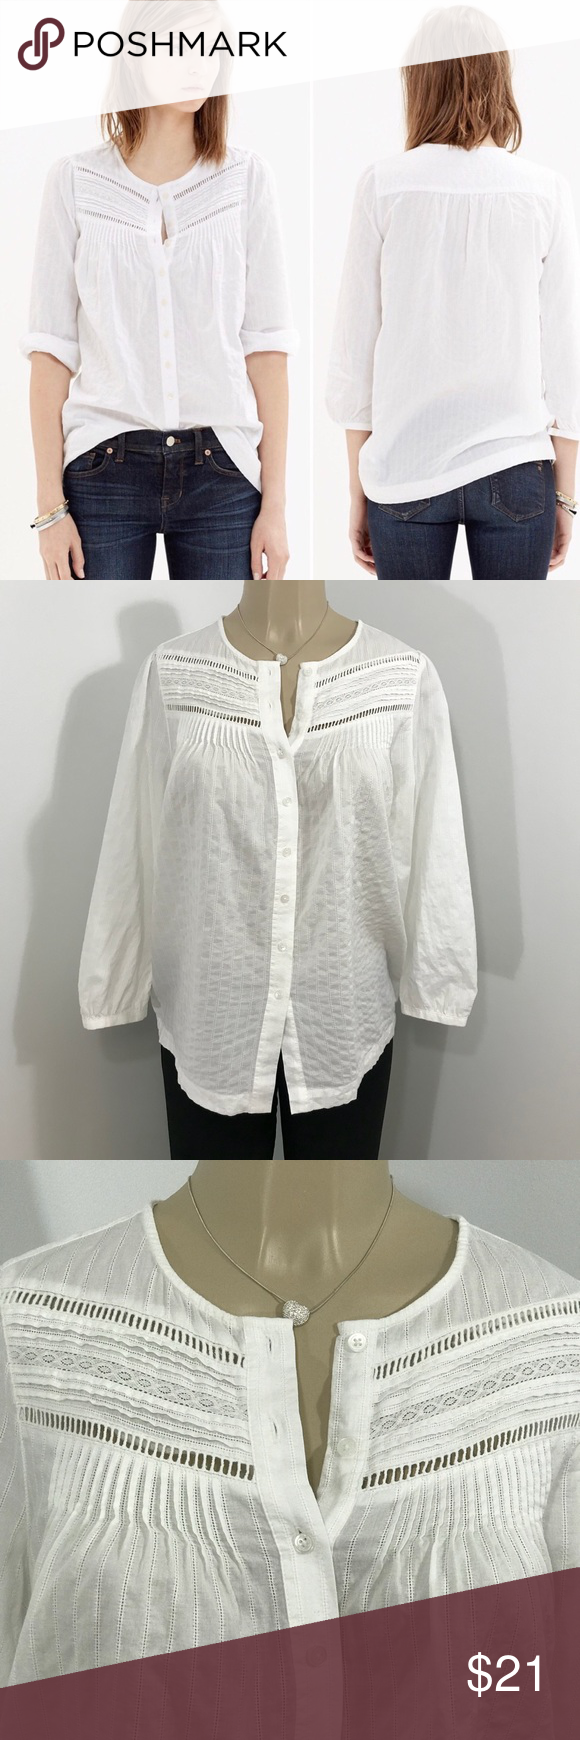 85ab22f195409 MADEWELL Pintuck Eyelet Cotton Button Down Top M This Madewell Pintuck  Eyelet Blouse is so feminine